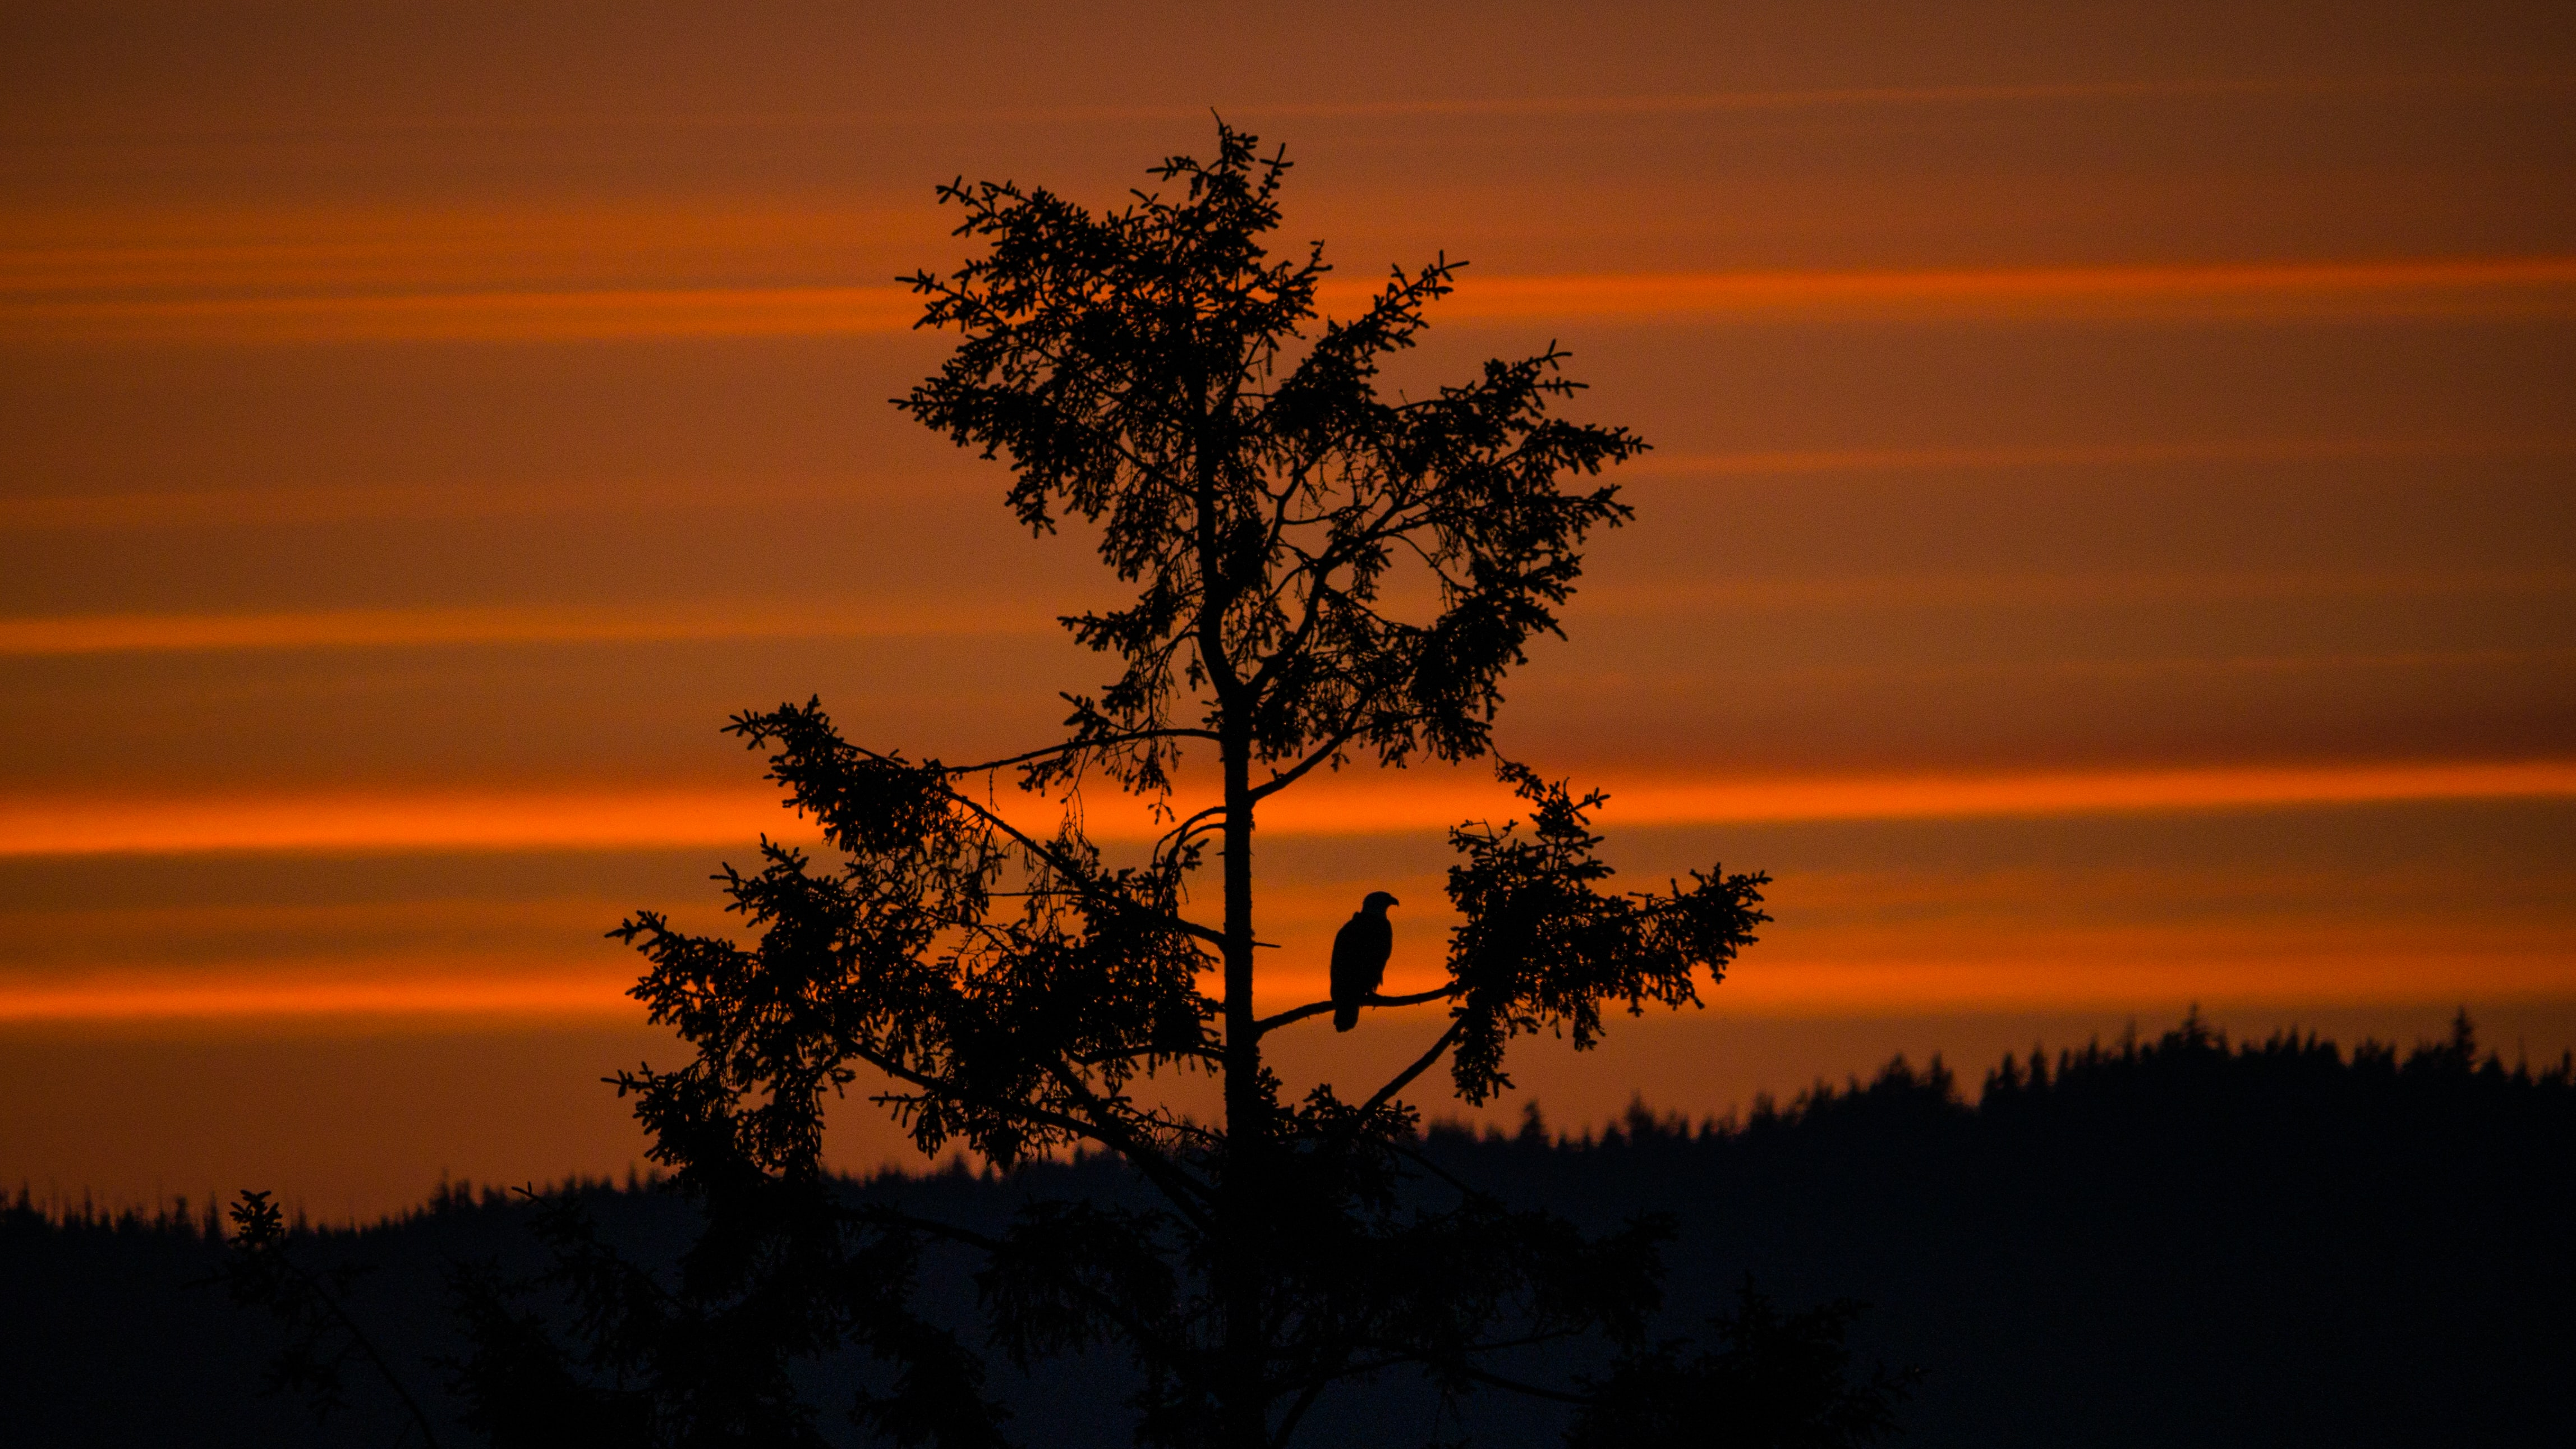 A silhouette of a bird sat in a tree in front of an orange sunset sky at Hyde Creek